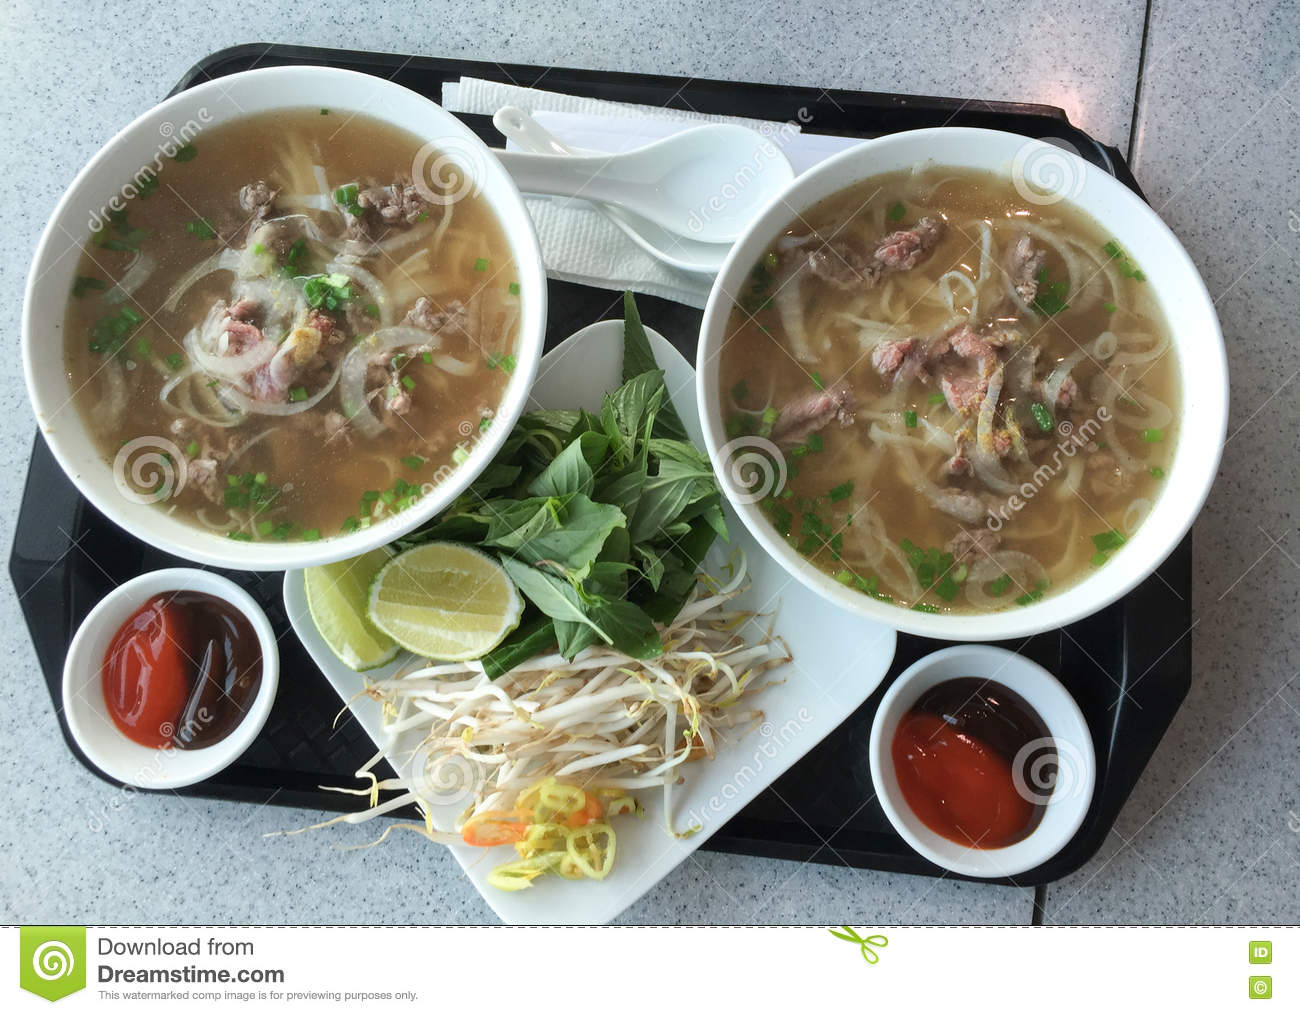 Noodle with beef (called Pho)